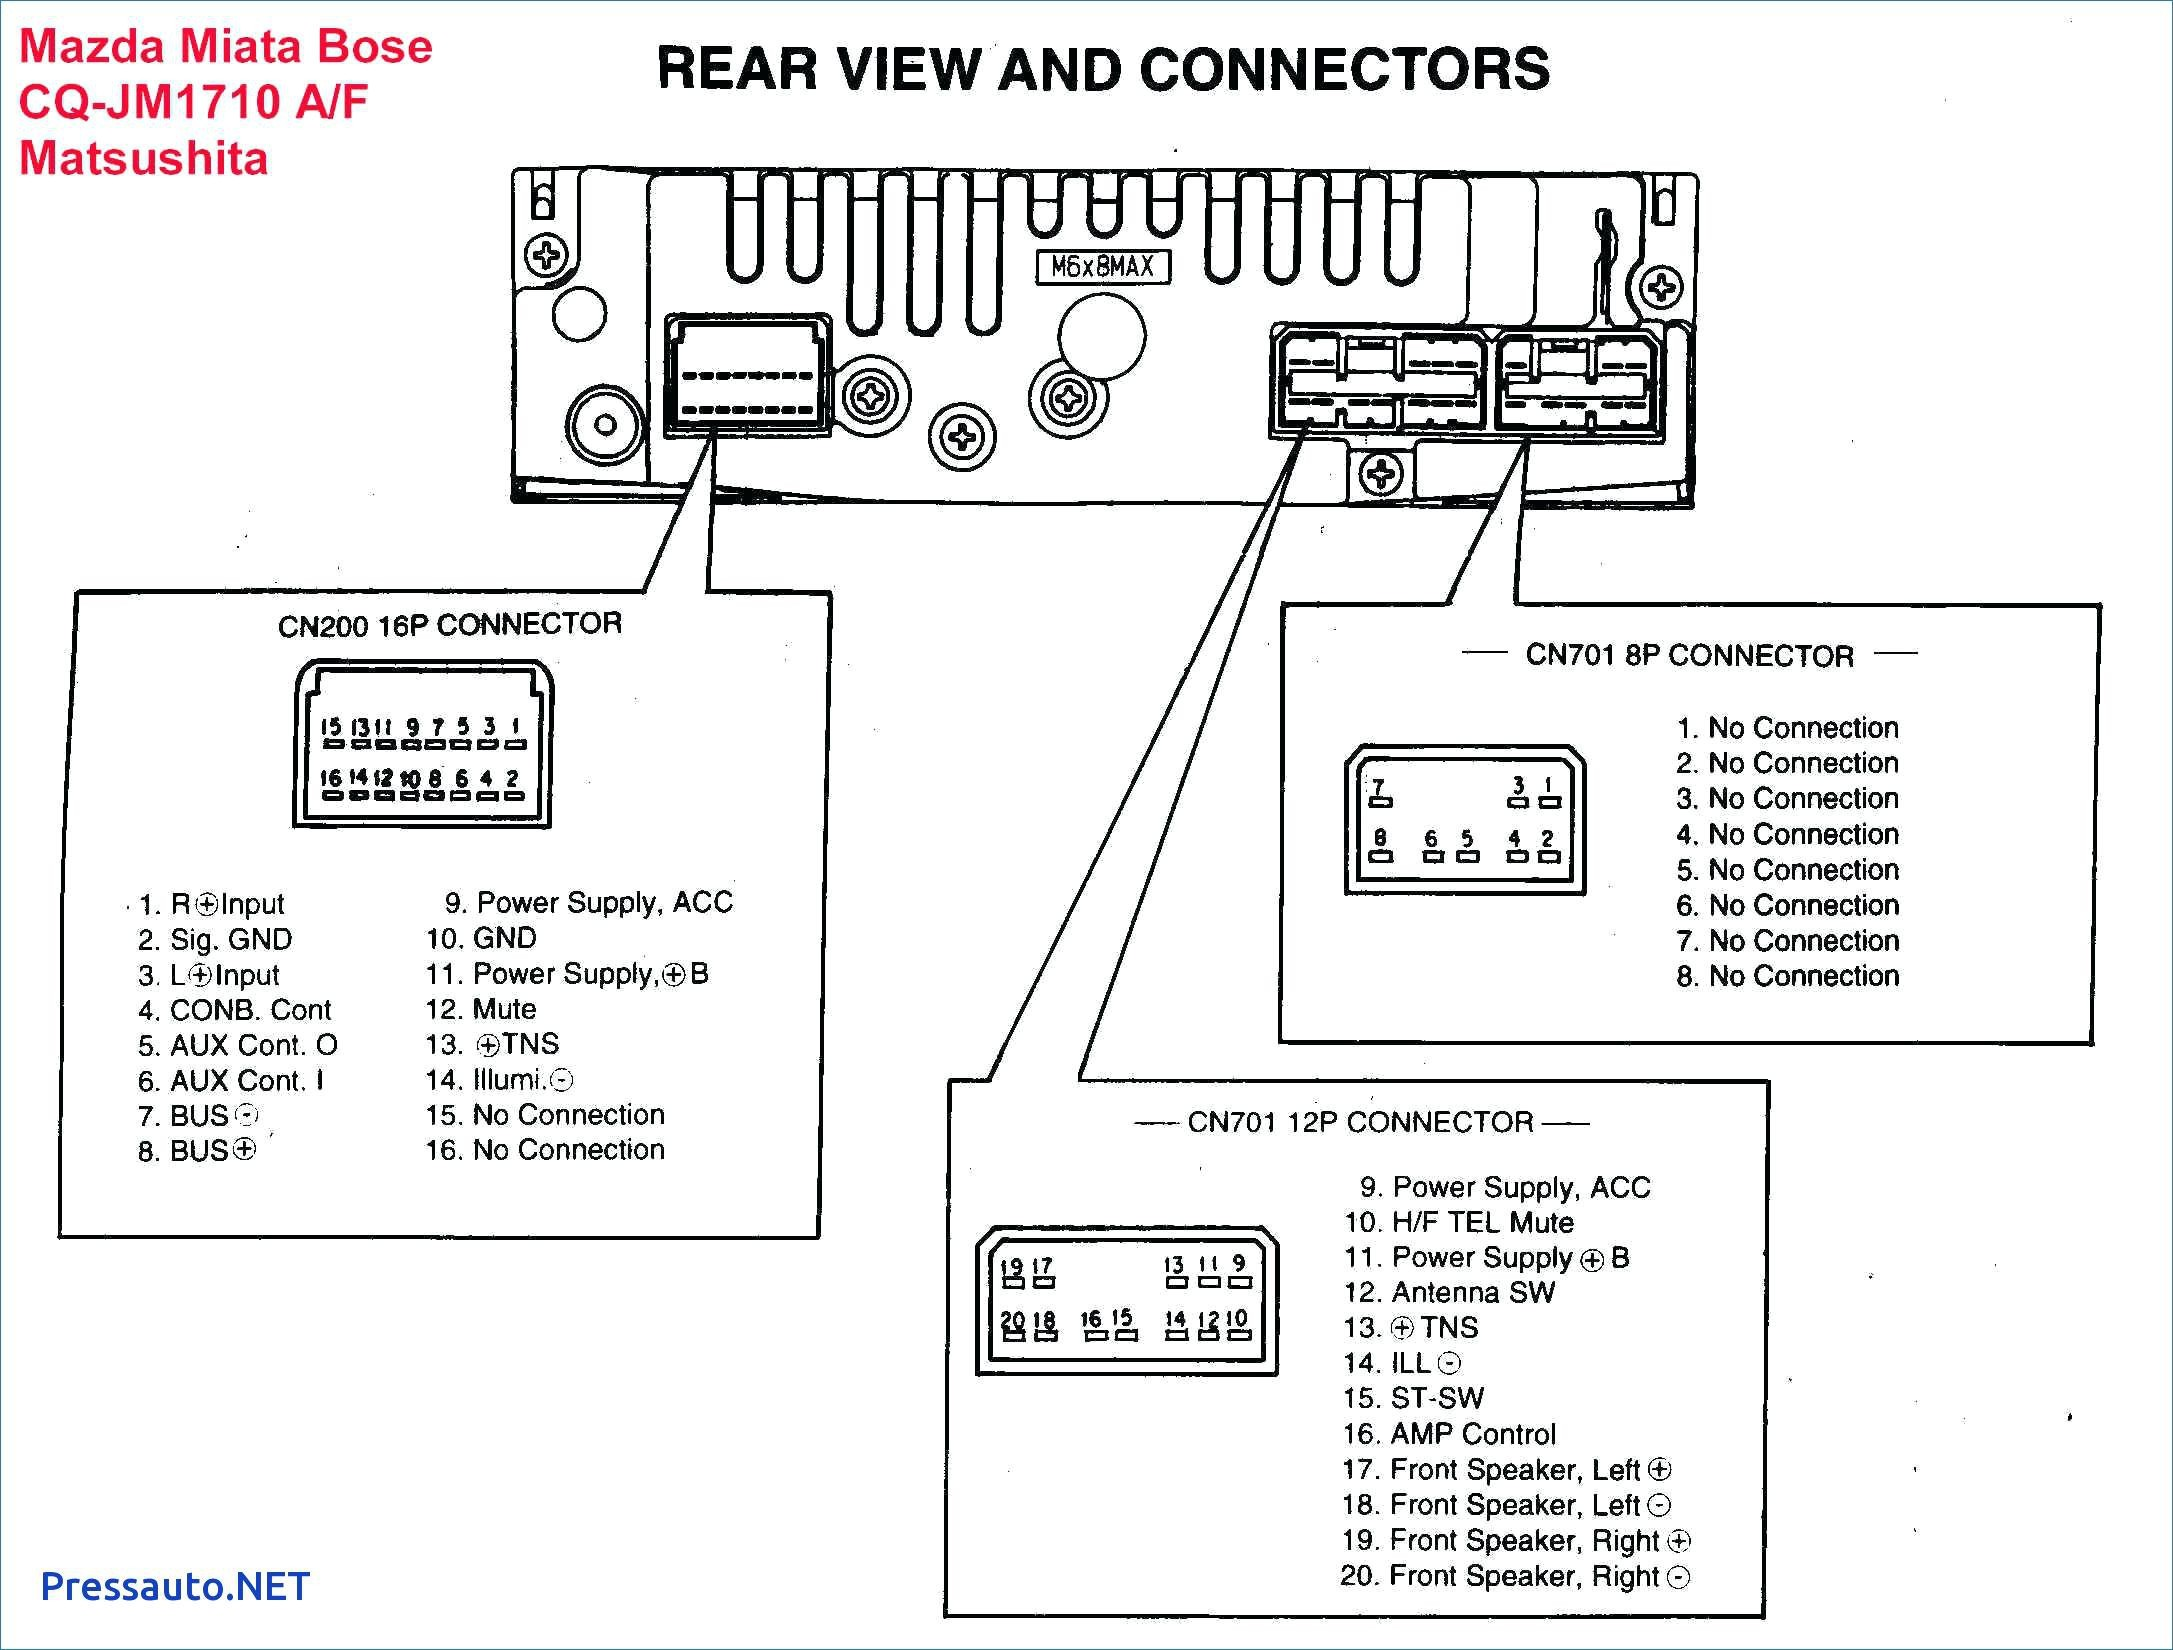 Wiring Diagram Mazda Cronos | Wiring Diagram on mazda brakes, mazda engine, mazda 3 relay diagram, mazda b2200 gauge cluster diagram, mazda cooling system, mazda wiring color codes, mazda manual transmission, mazda battery, mazda parts, mazda accessories, mazda fuses, mazda exhaust, mazda alternator wiring, mazda miata radio wiring,